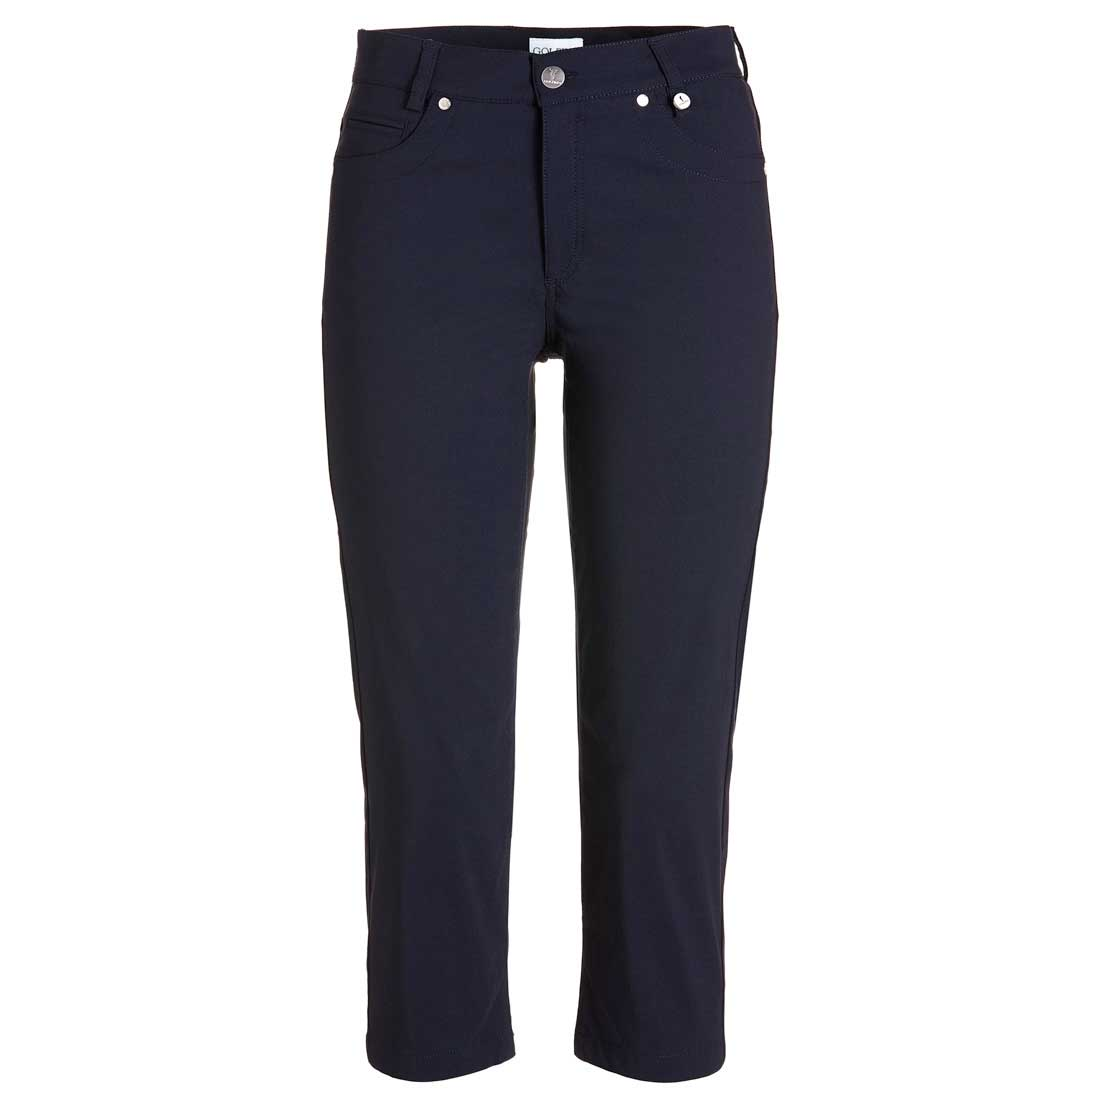 Pantalón capri Techno Stretch de mujer con Moisture Management y Sun Protection